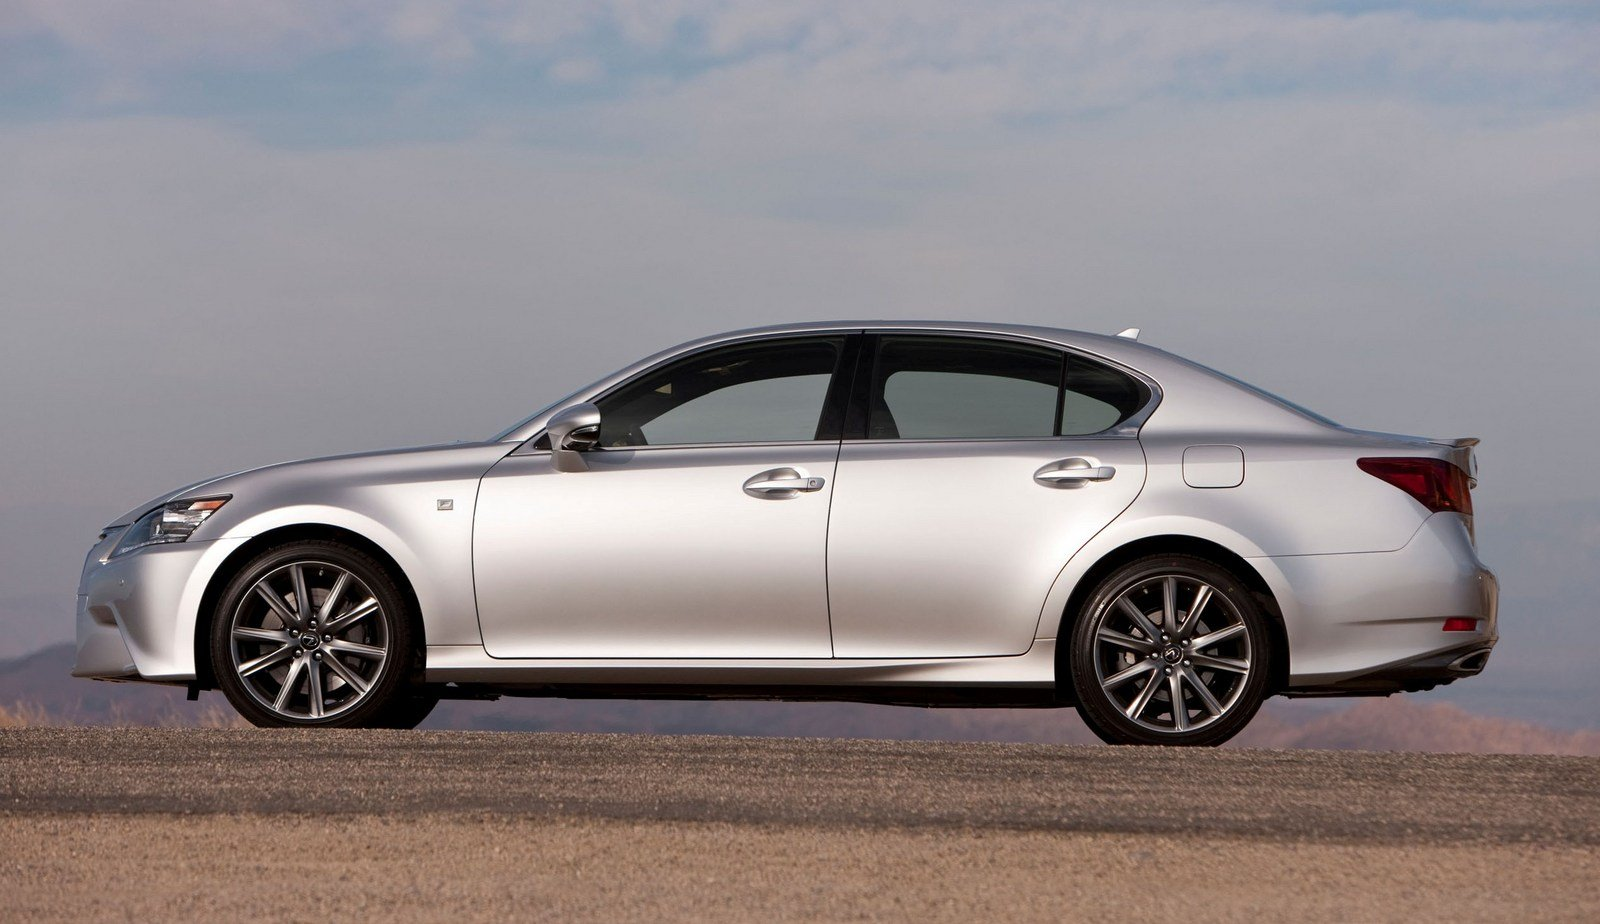 2014 lexus gs 350 picture 525798 car review top speed. Black Bedroom Furniture Sets. Home Design Ideas